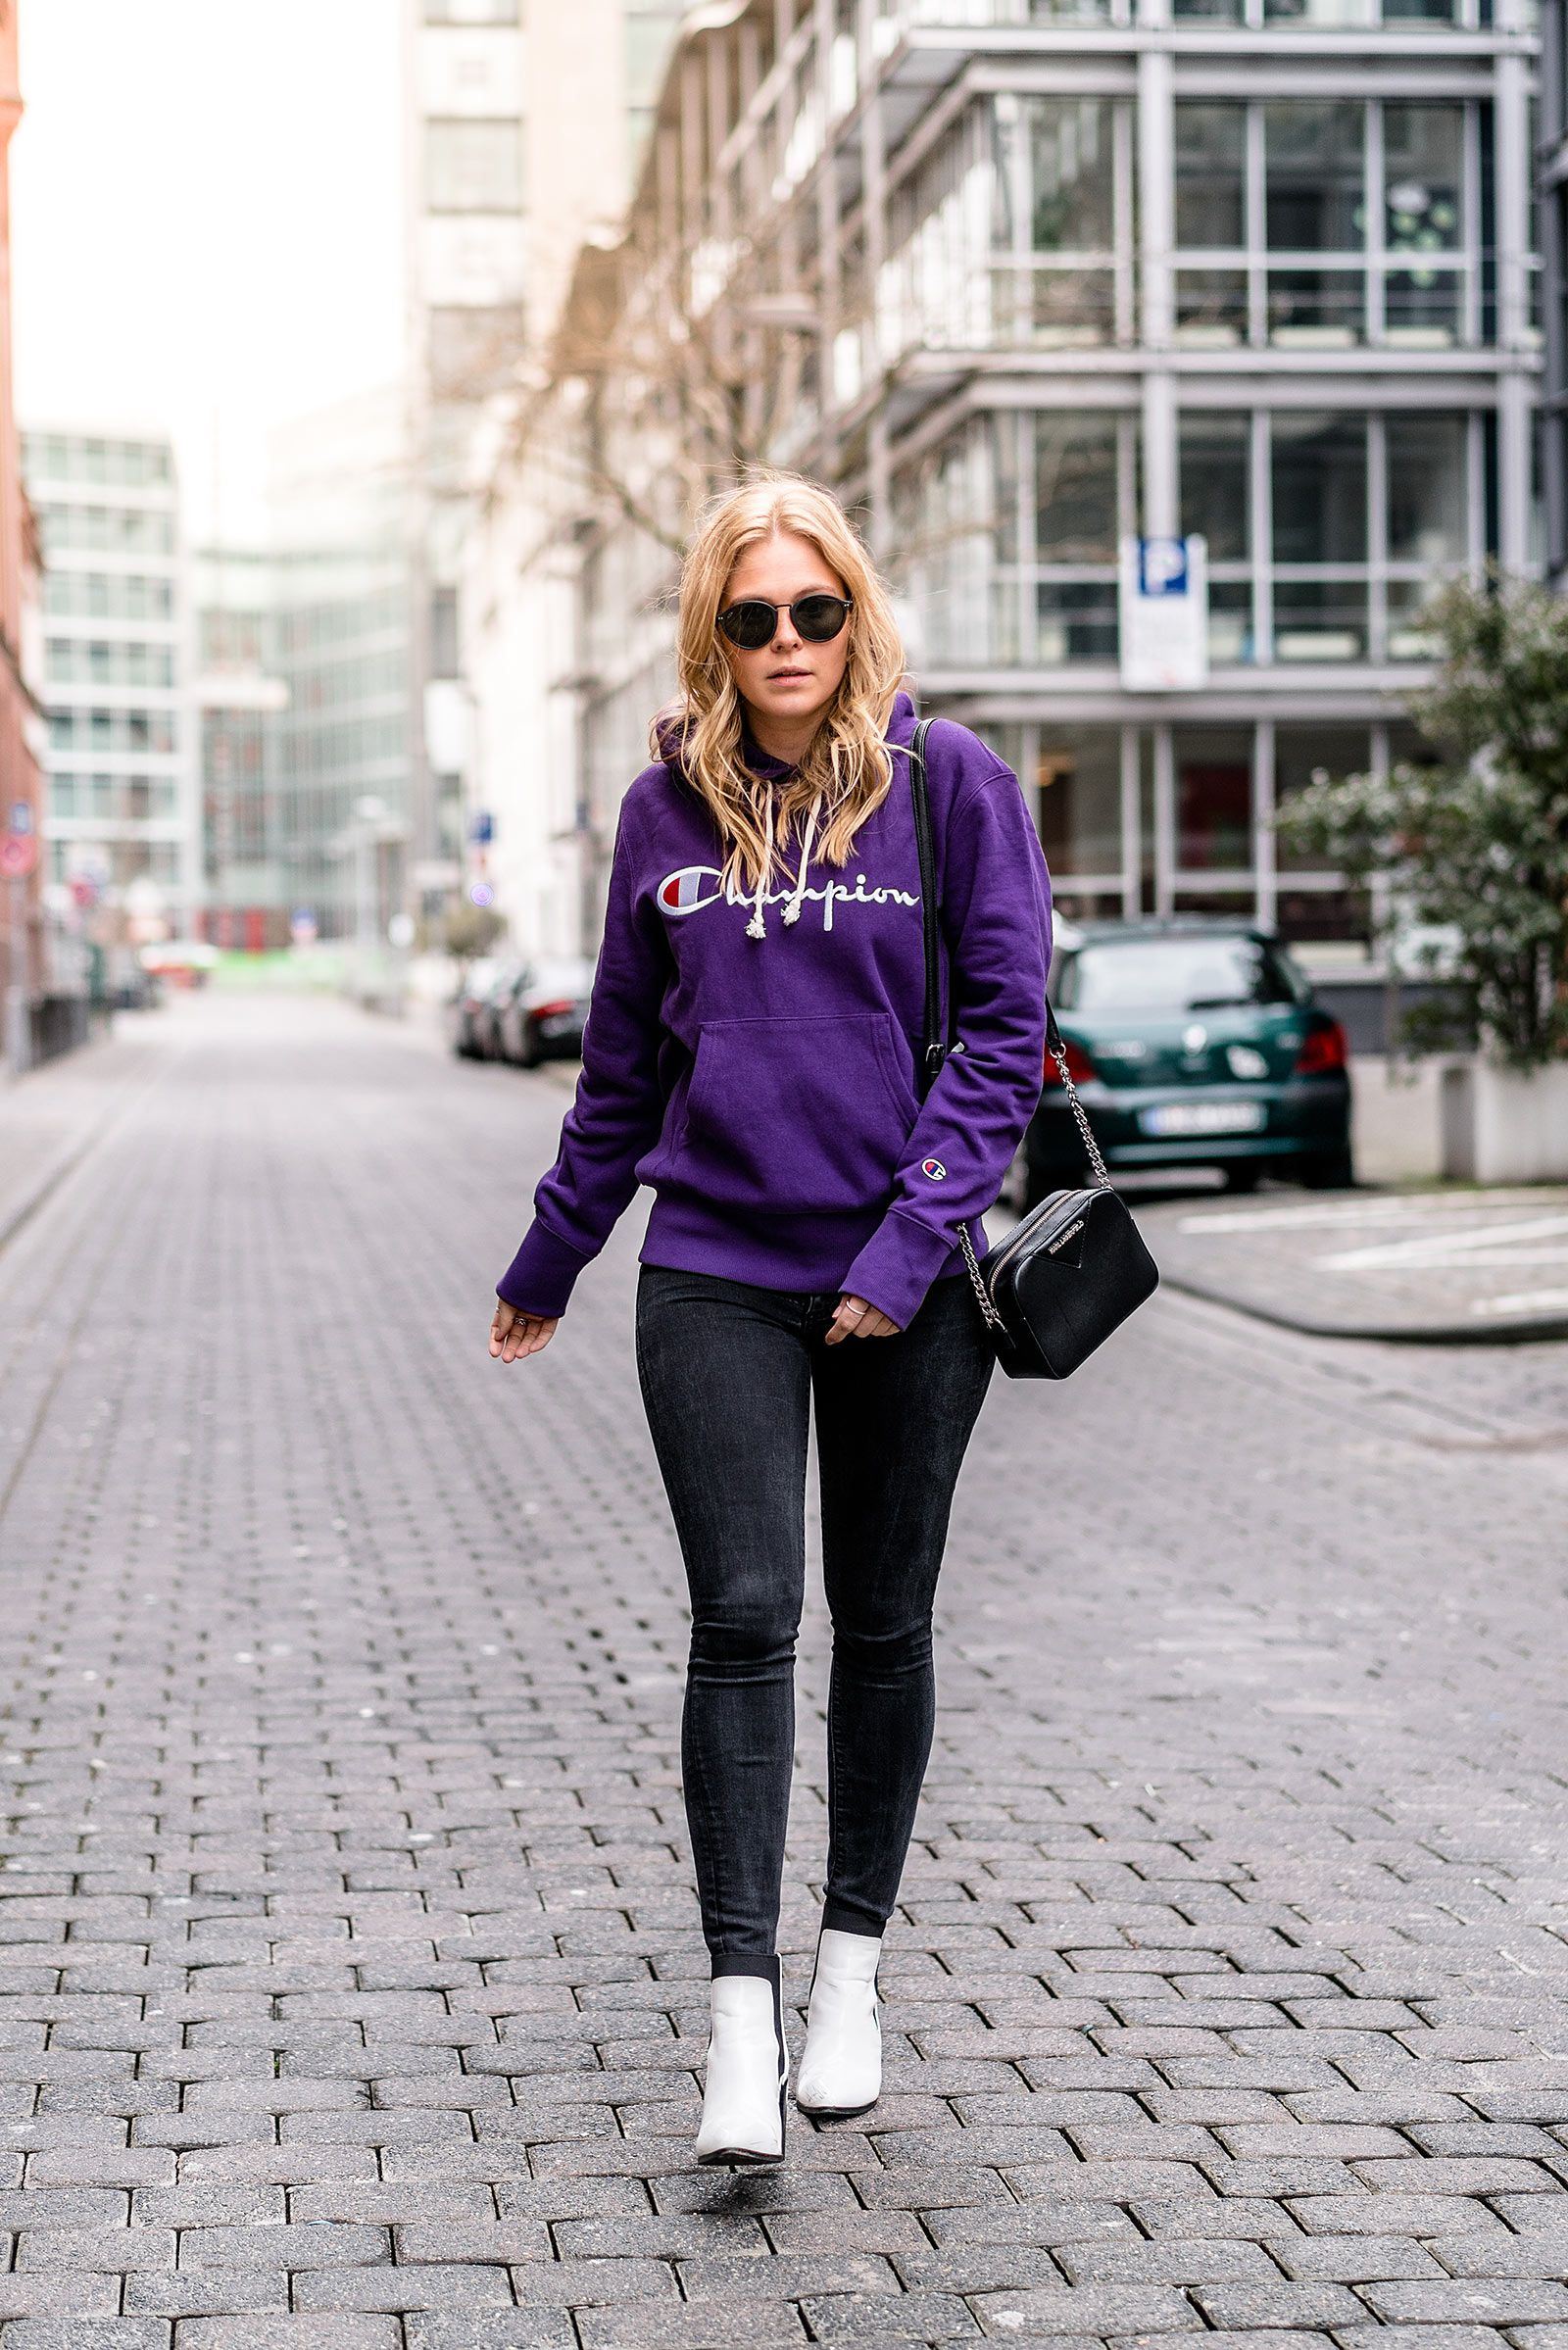 Ultra Violet: Mein Outfit zur Trendfarbe 2018 Fashion Blog